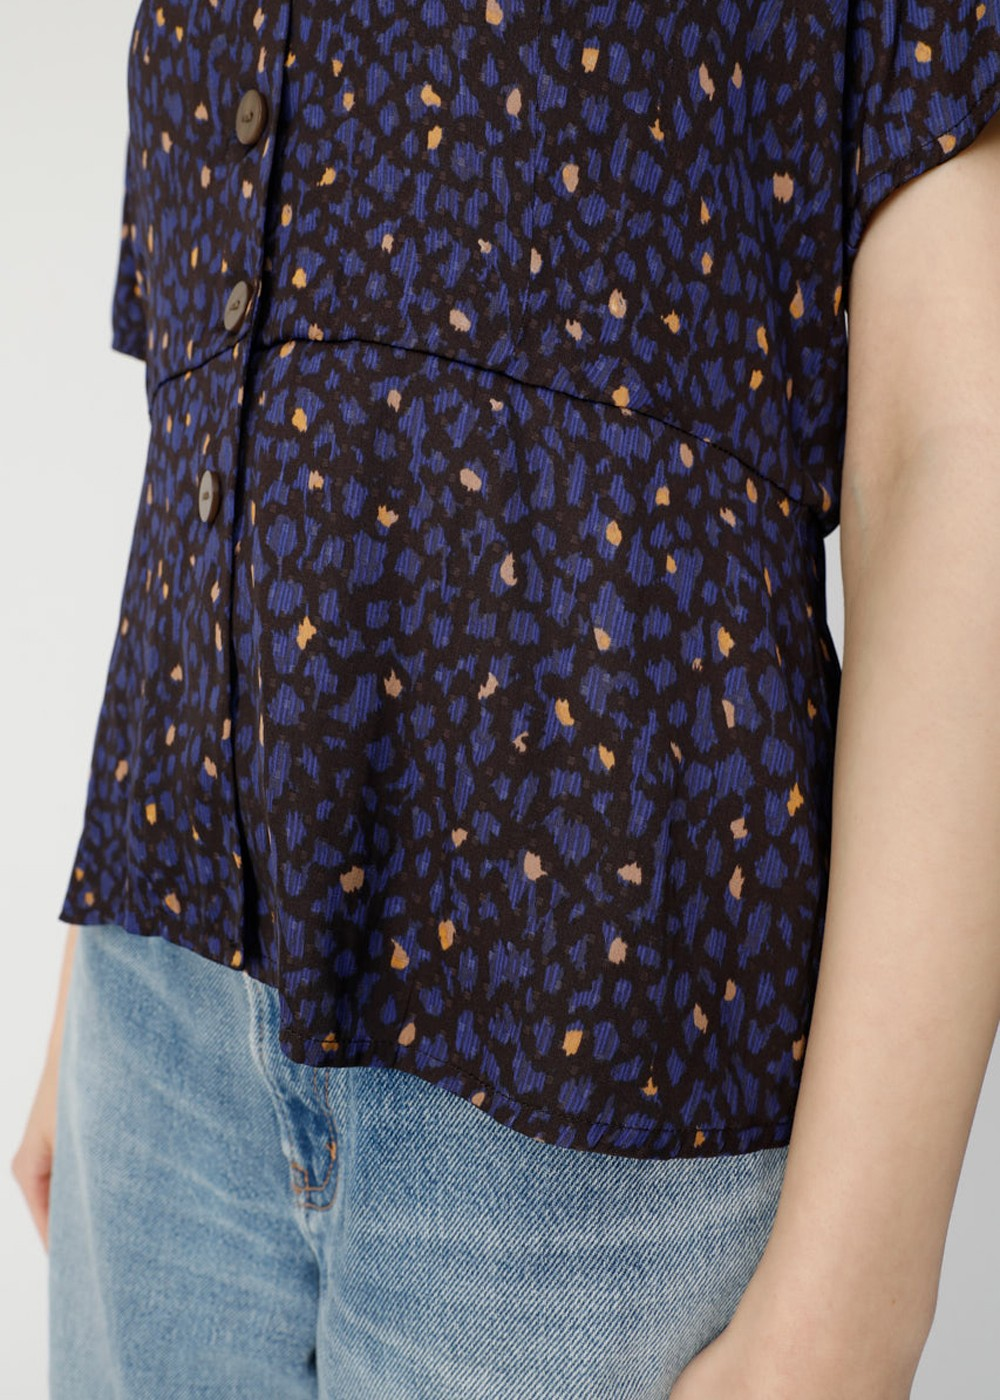 【最大70%OFF】ABSTRACT PATTERN BLOUSE|柄NVY|ブラウス|MOUSSY